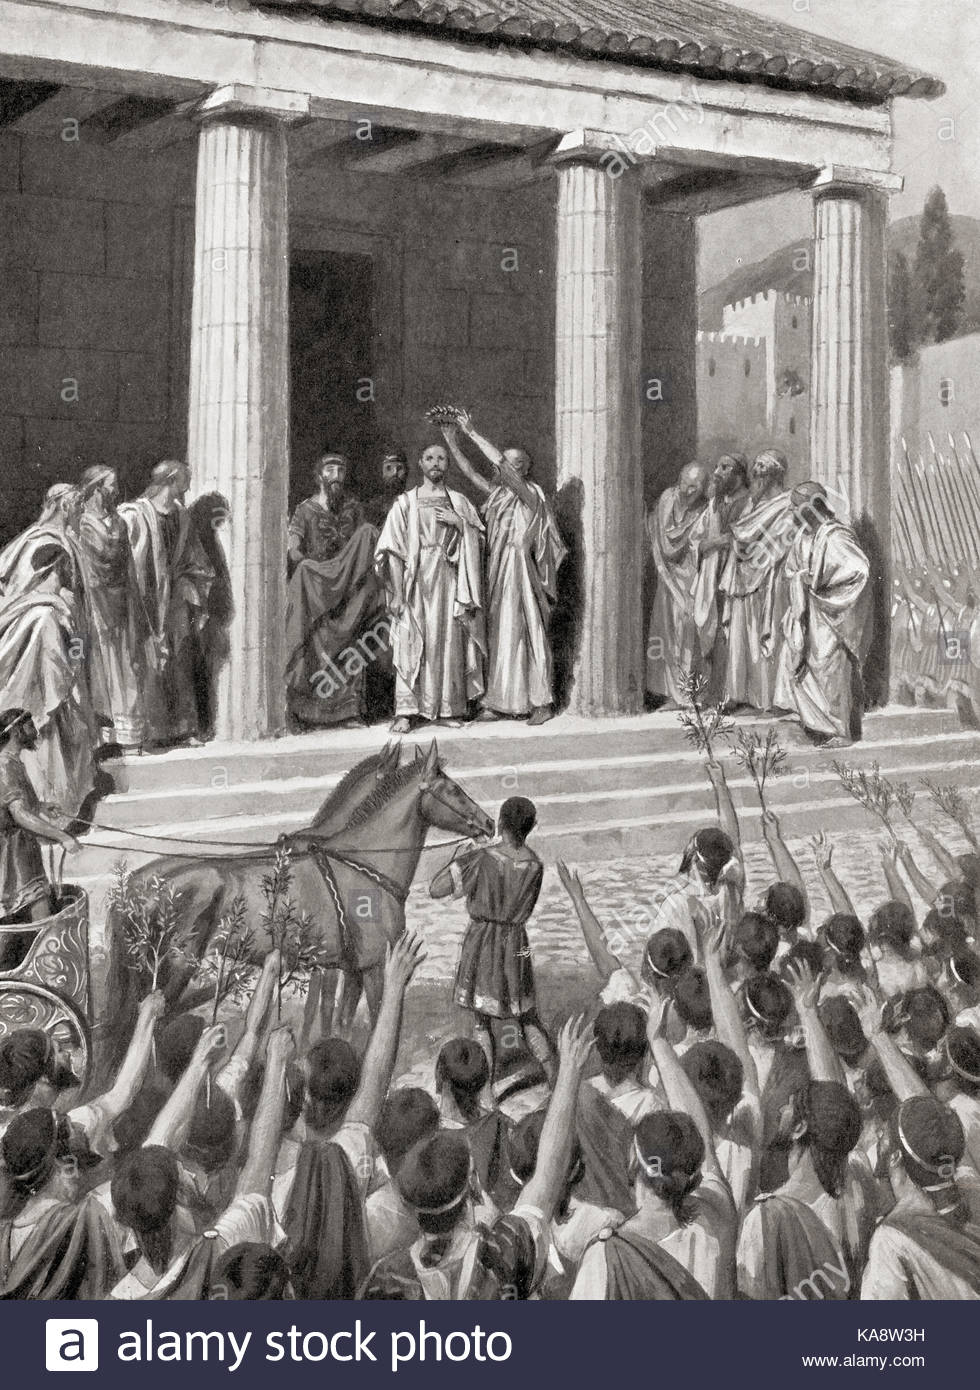 Themistocles honoured at Sparta and declared a hero after the Battle of Salamis, c.480 BC. Themistocles, c. 524–459 - Stock Image